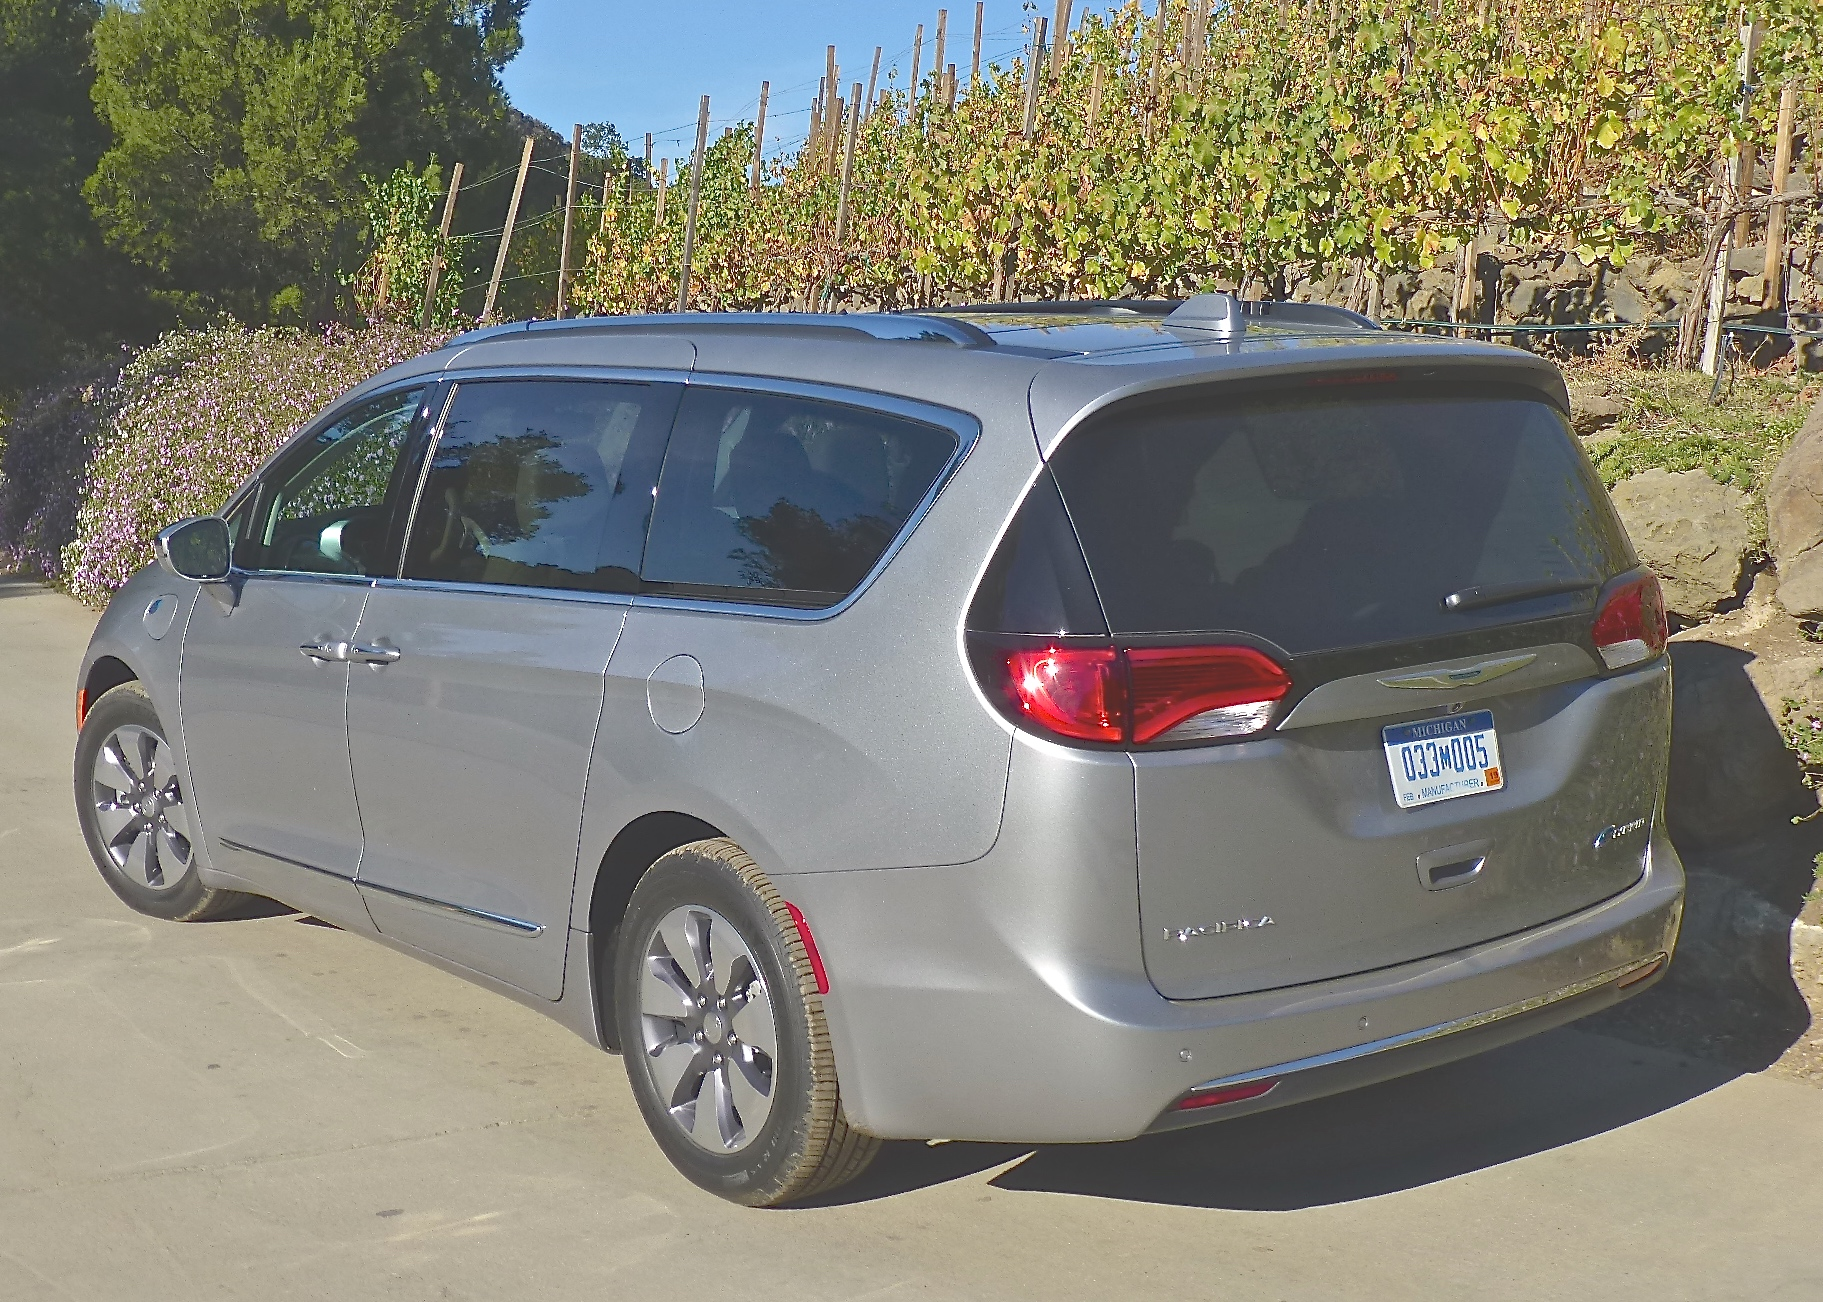 Redesigned Chrysler Pacifica Minivan Now Includes A Hybrid Optional Model That Can Roach 100 Mpg